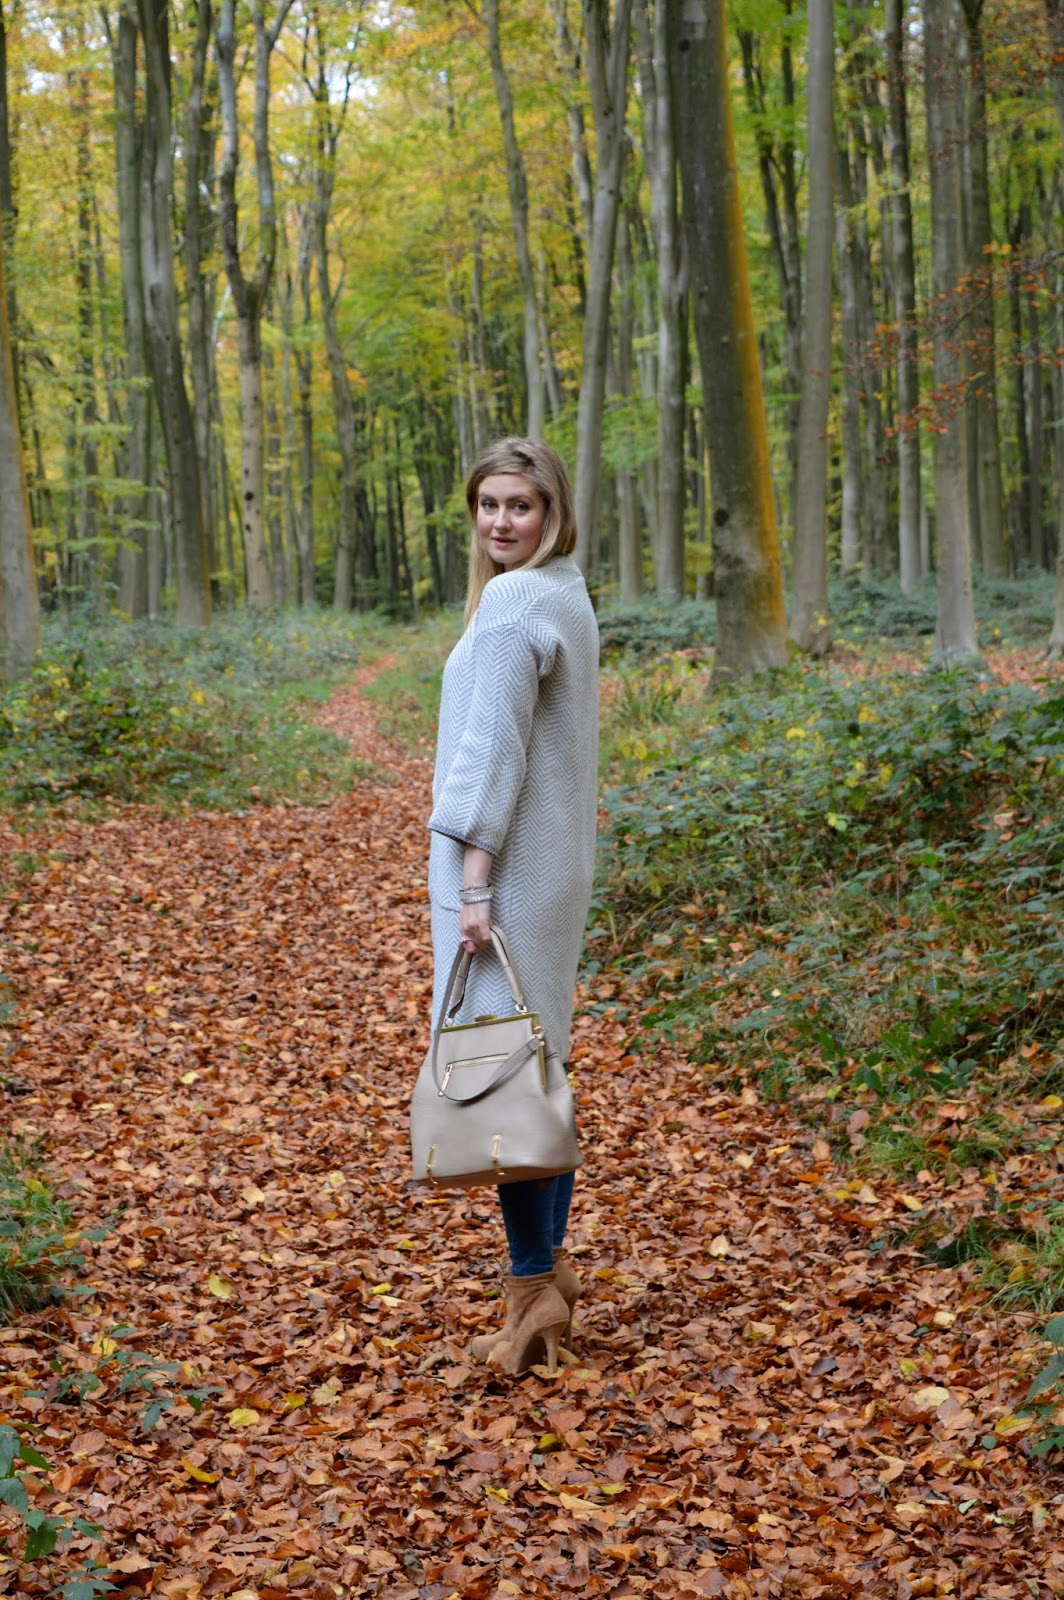 Autumn fashion inspiration, Hampshire bloggers, fashion bloggers, UK fashion blog